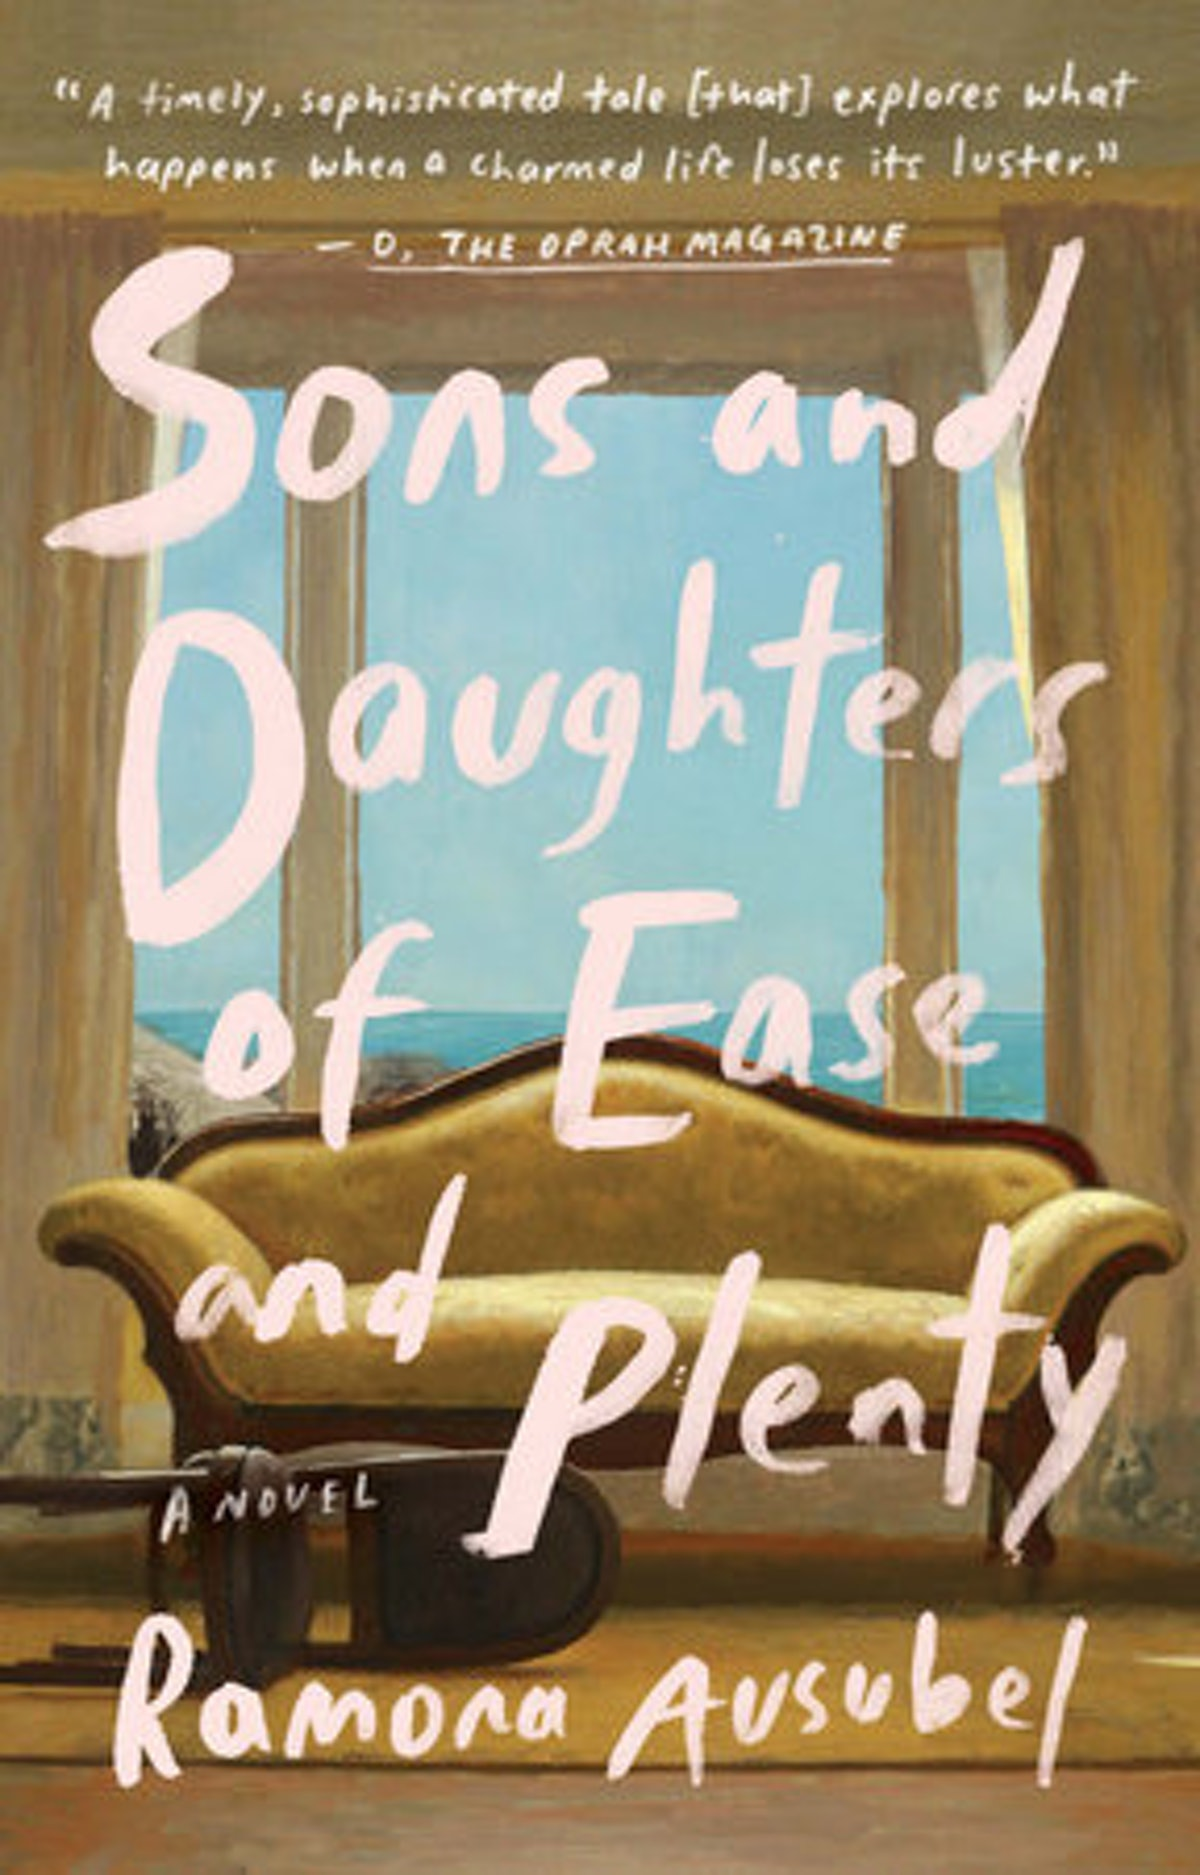 'Sons and Daughters of Ease and Plenty' by Ramona Ausubel